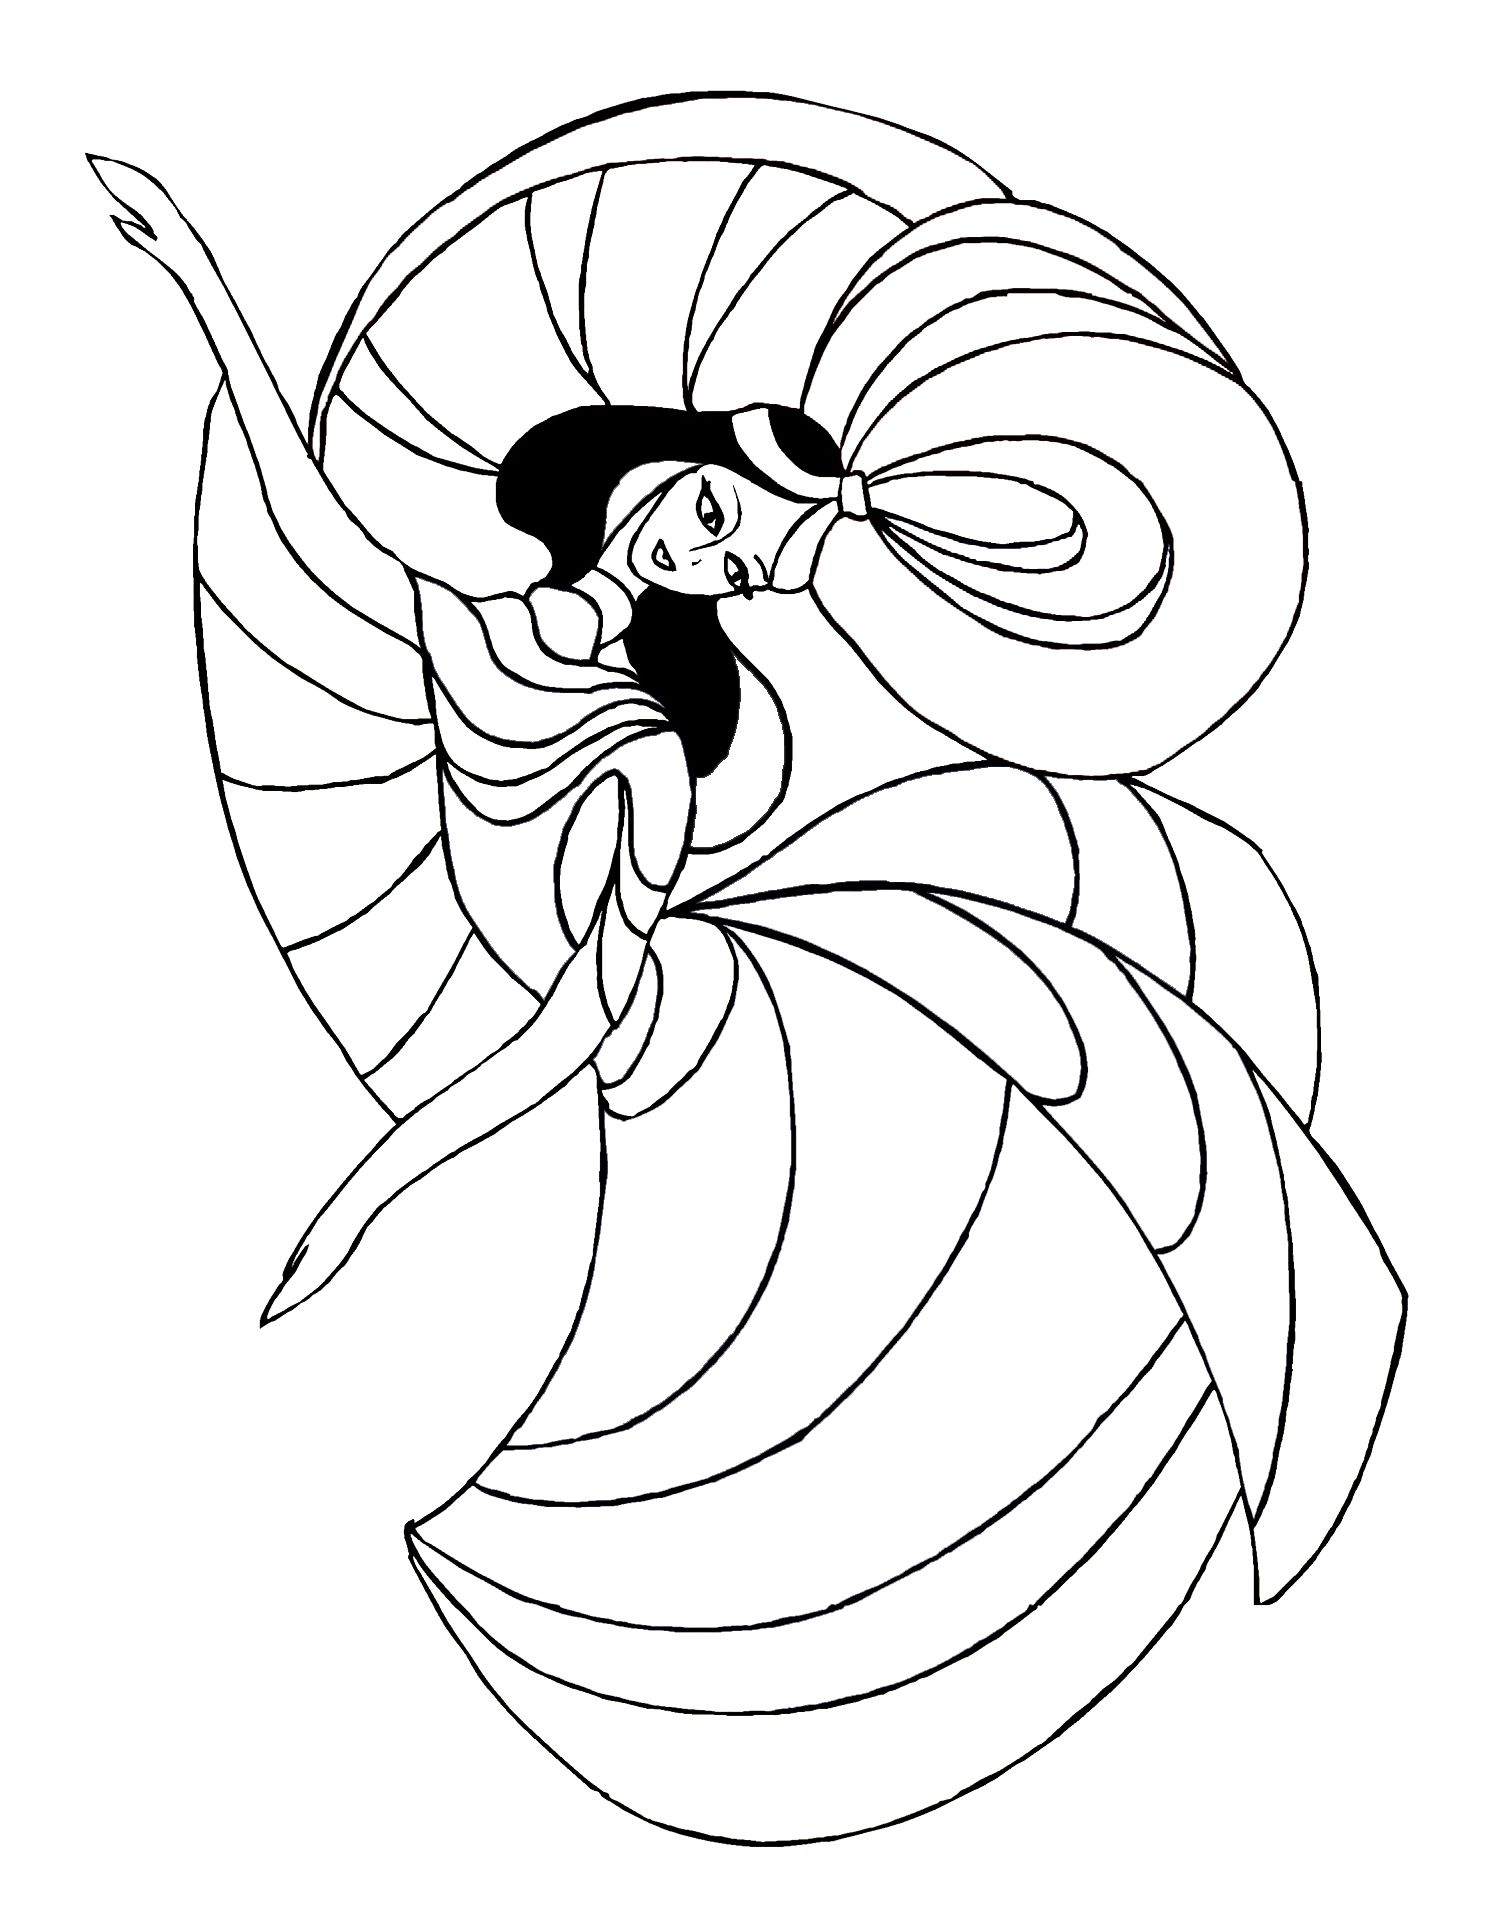 Oriental Dancer For Coloring In 2020 Dance Coloring Pages Coloring Pages Color